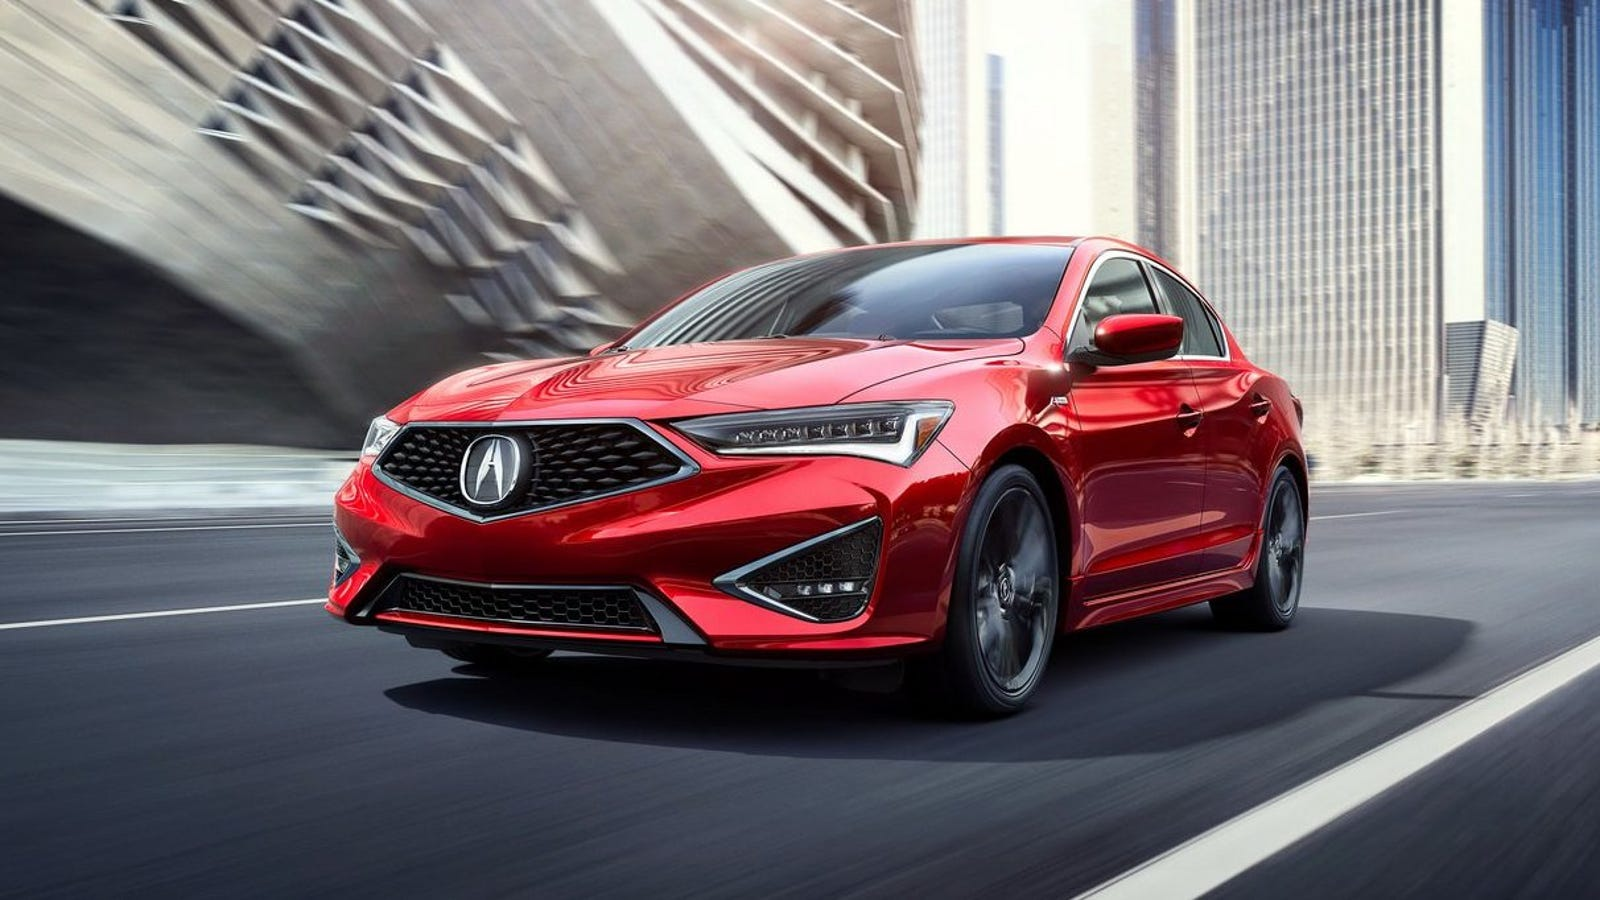 2019 Acura ILX: Hot Damn They Got This Thing To Look Cool ...